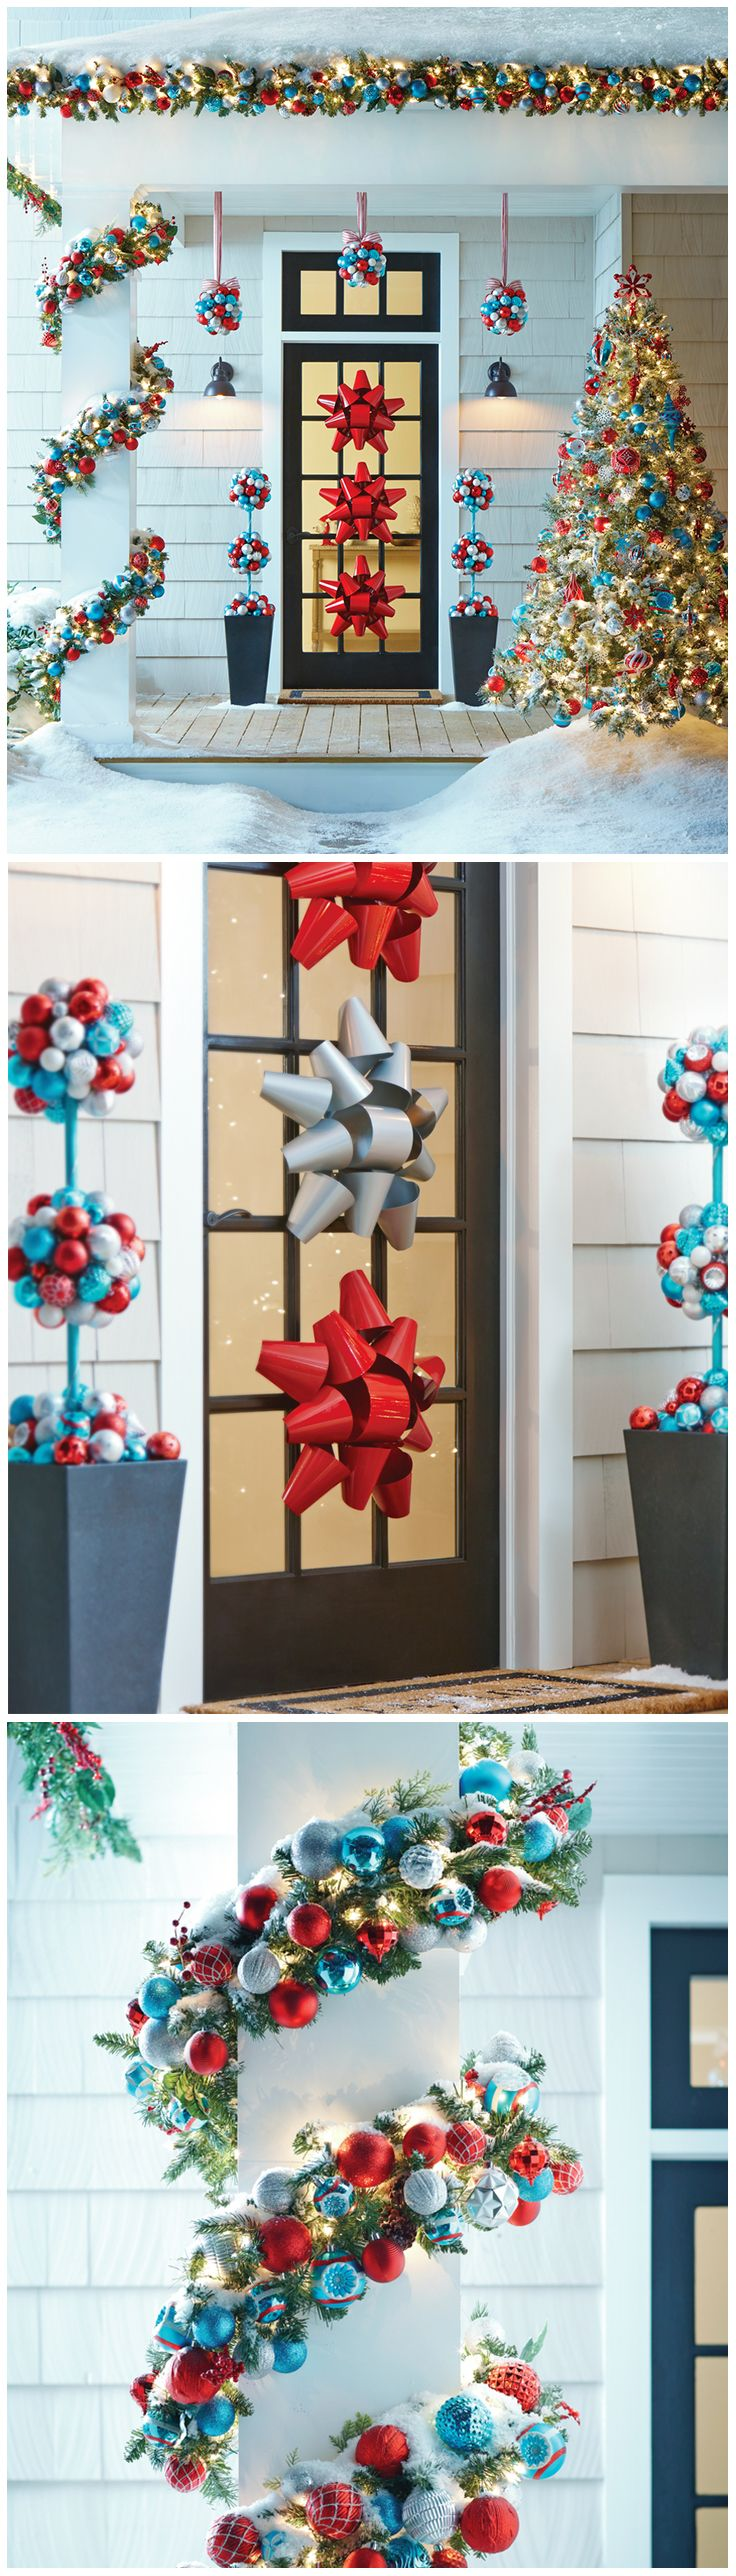 484 Best Martha 39 S Brightest Ideas Images On Pinterest Martha Stewart Holiday Decorations And